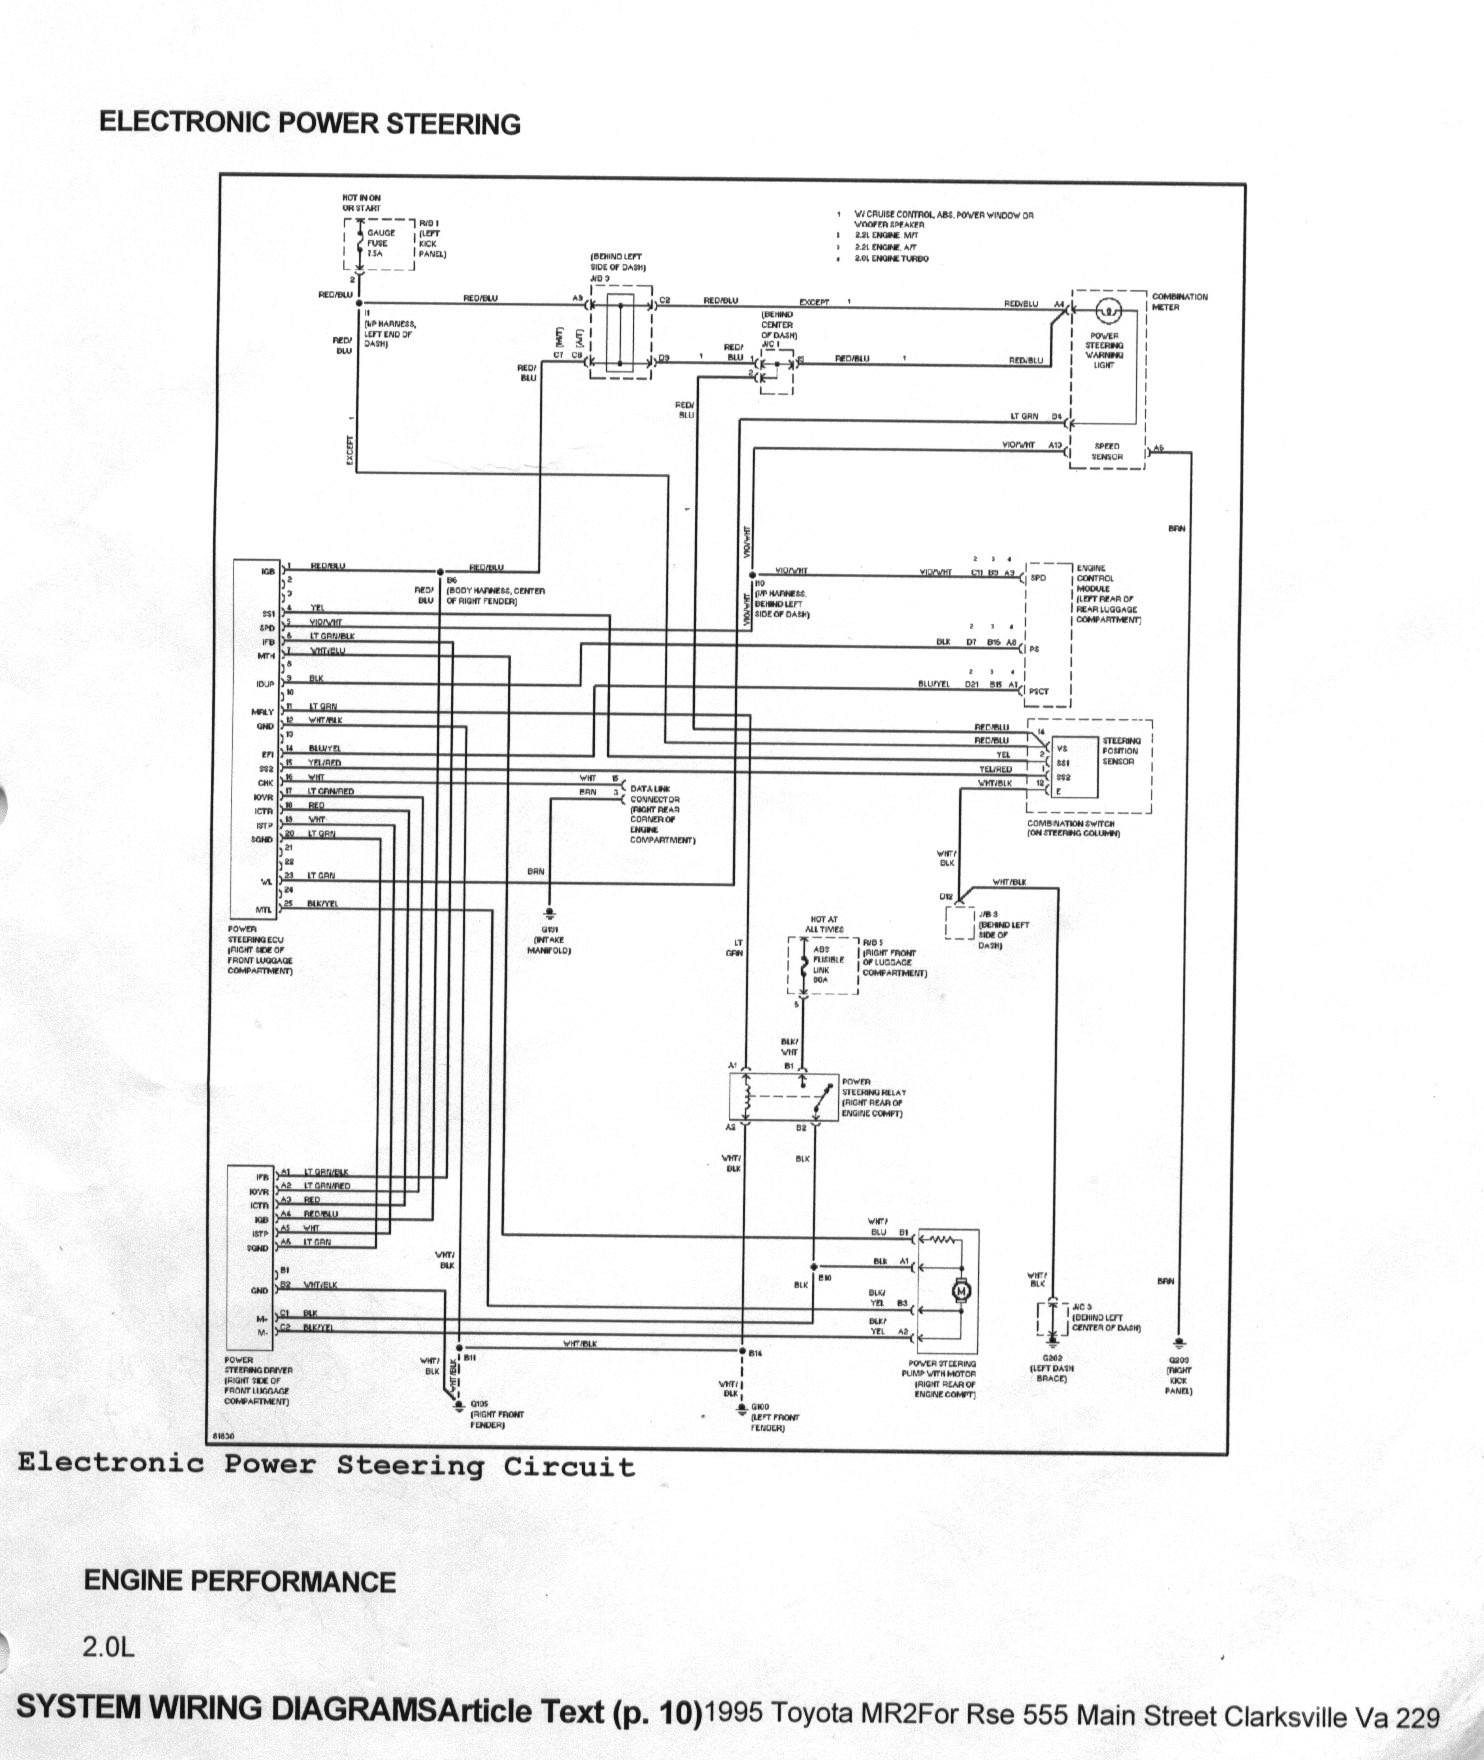 Wrg Wiring Diagram Toyota Mark 2